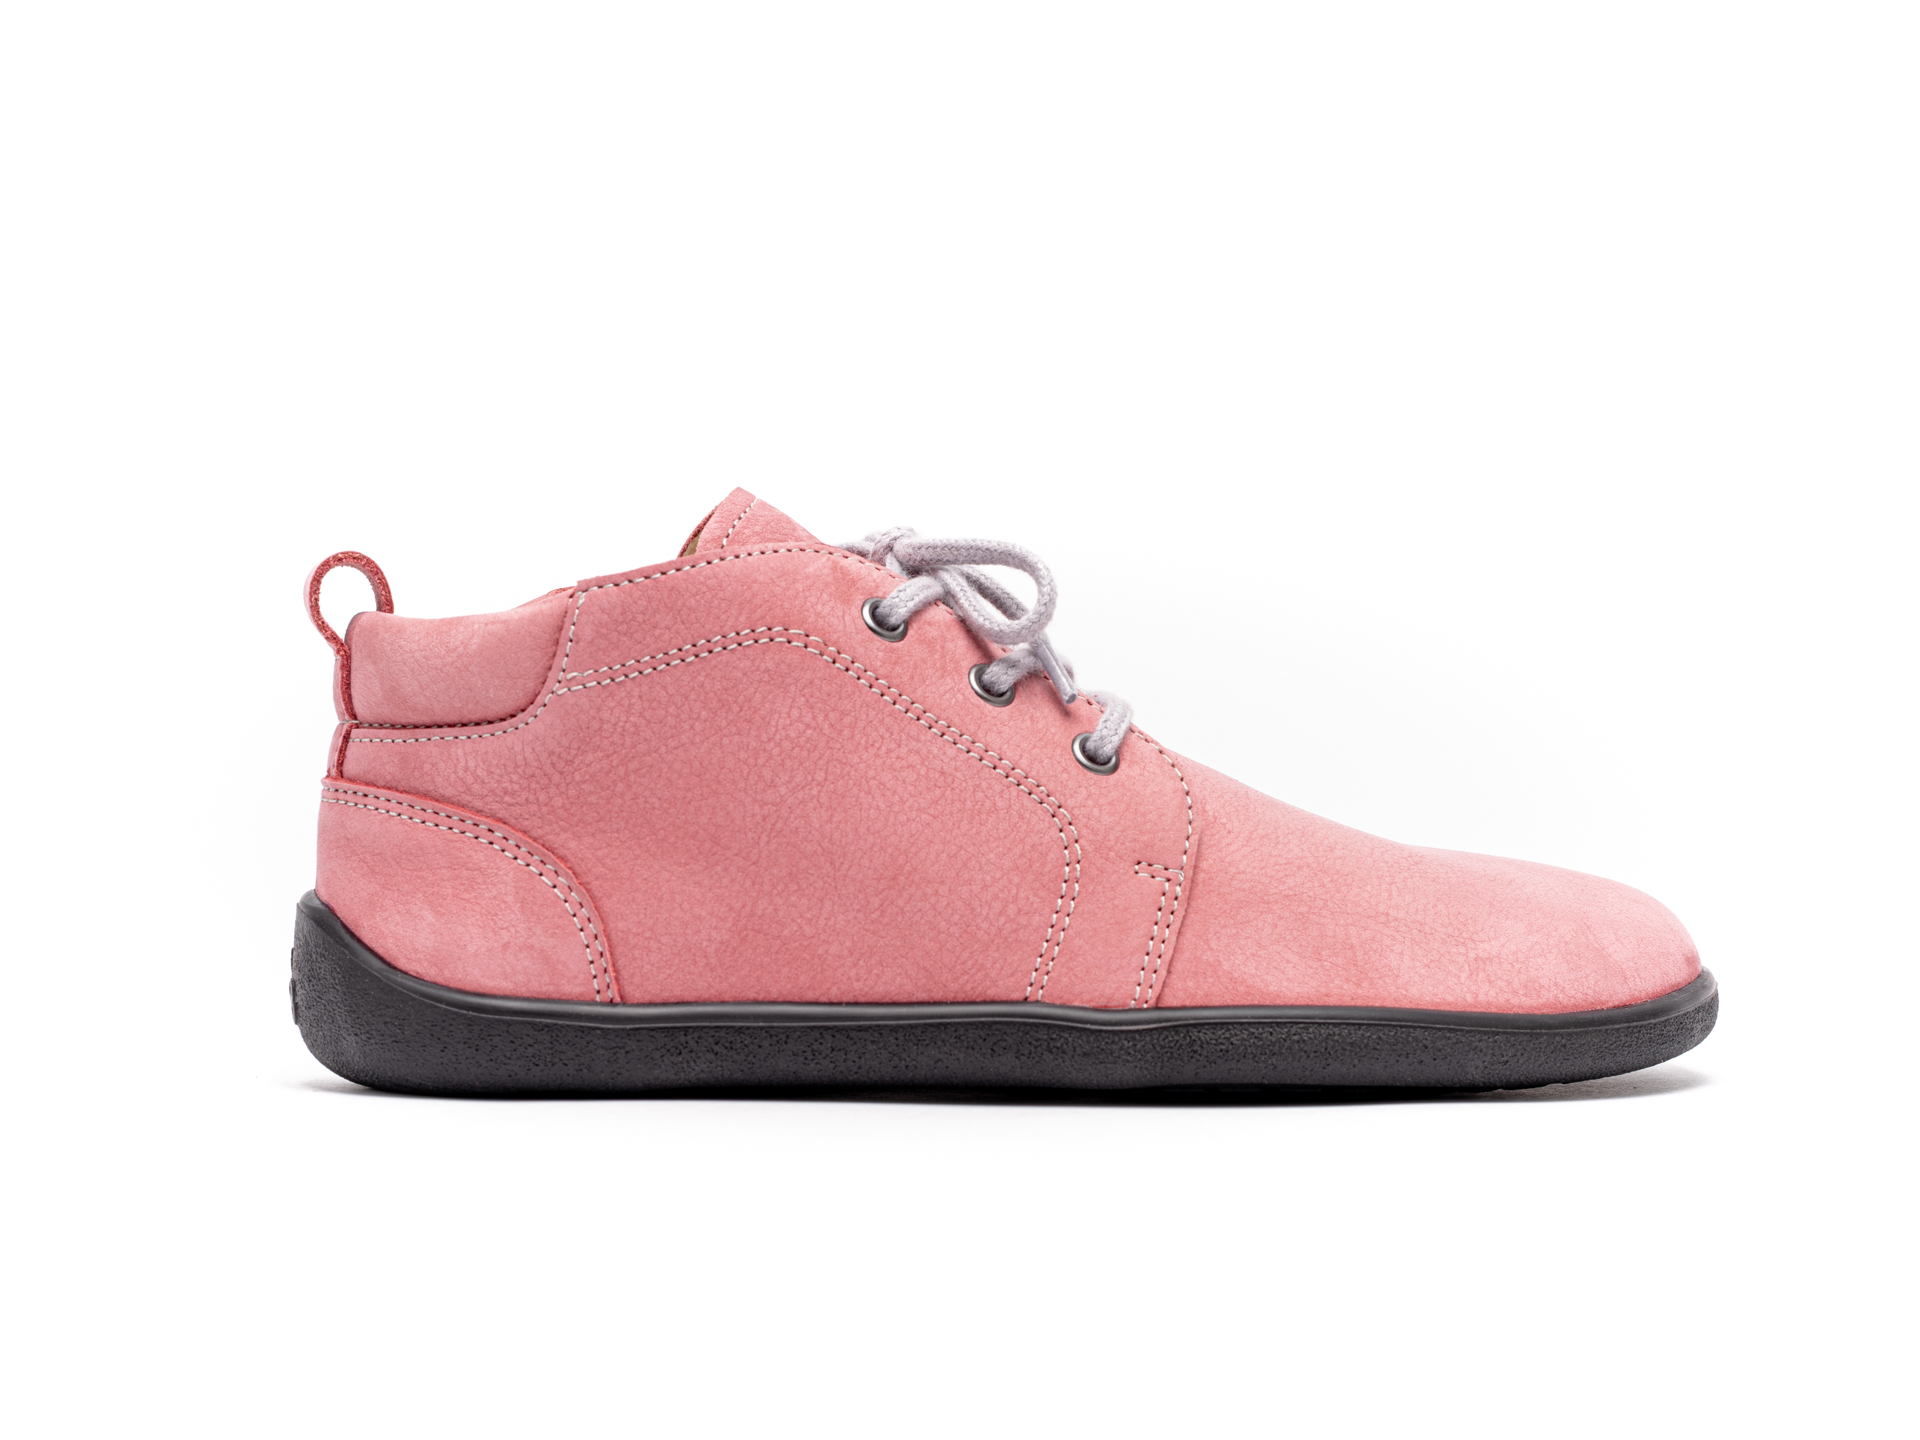 Barefoot Shoes - Be Lenka All-year - Icon - Light Pink 42